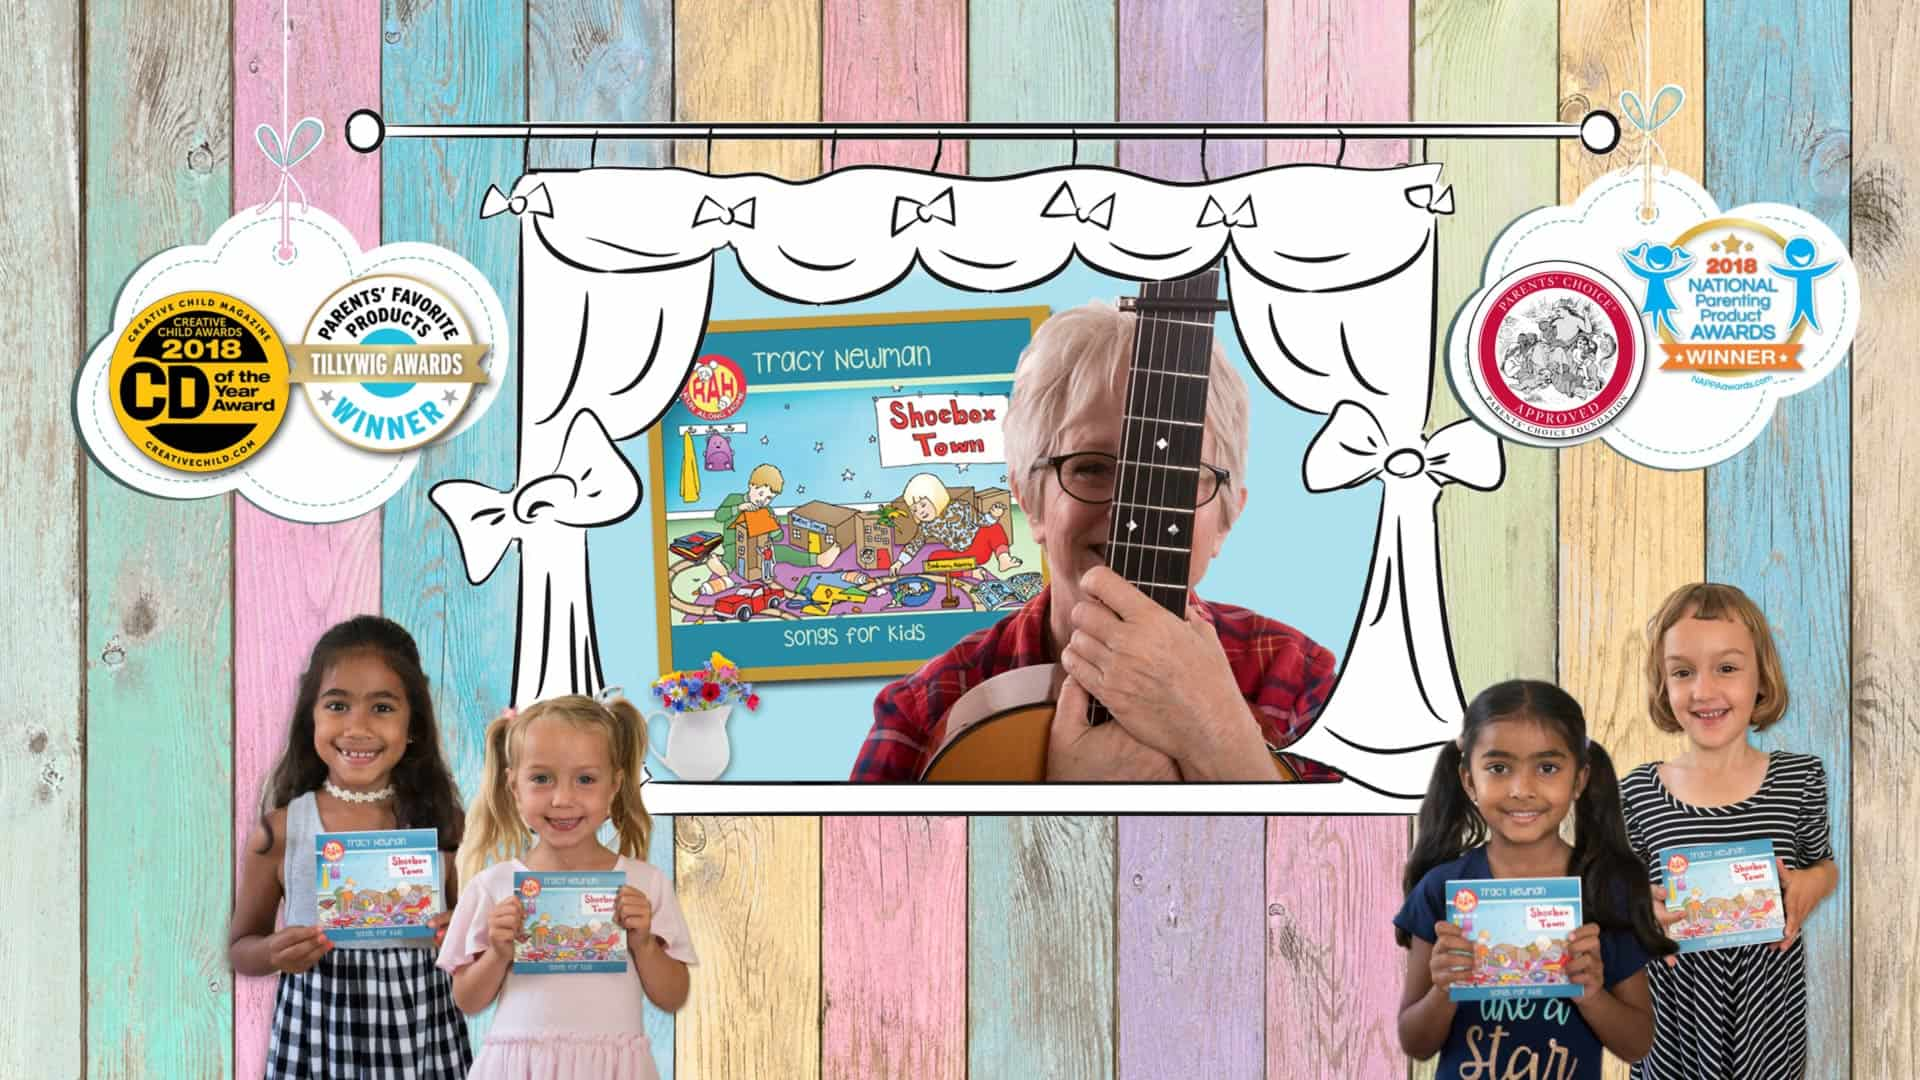 Tracy Newman's CD for kids, Shoebox Town, wins four awards in 2018.